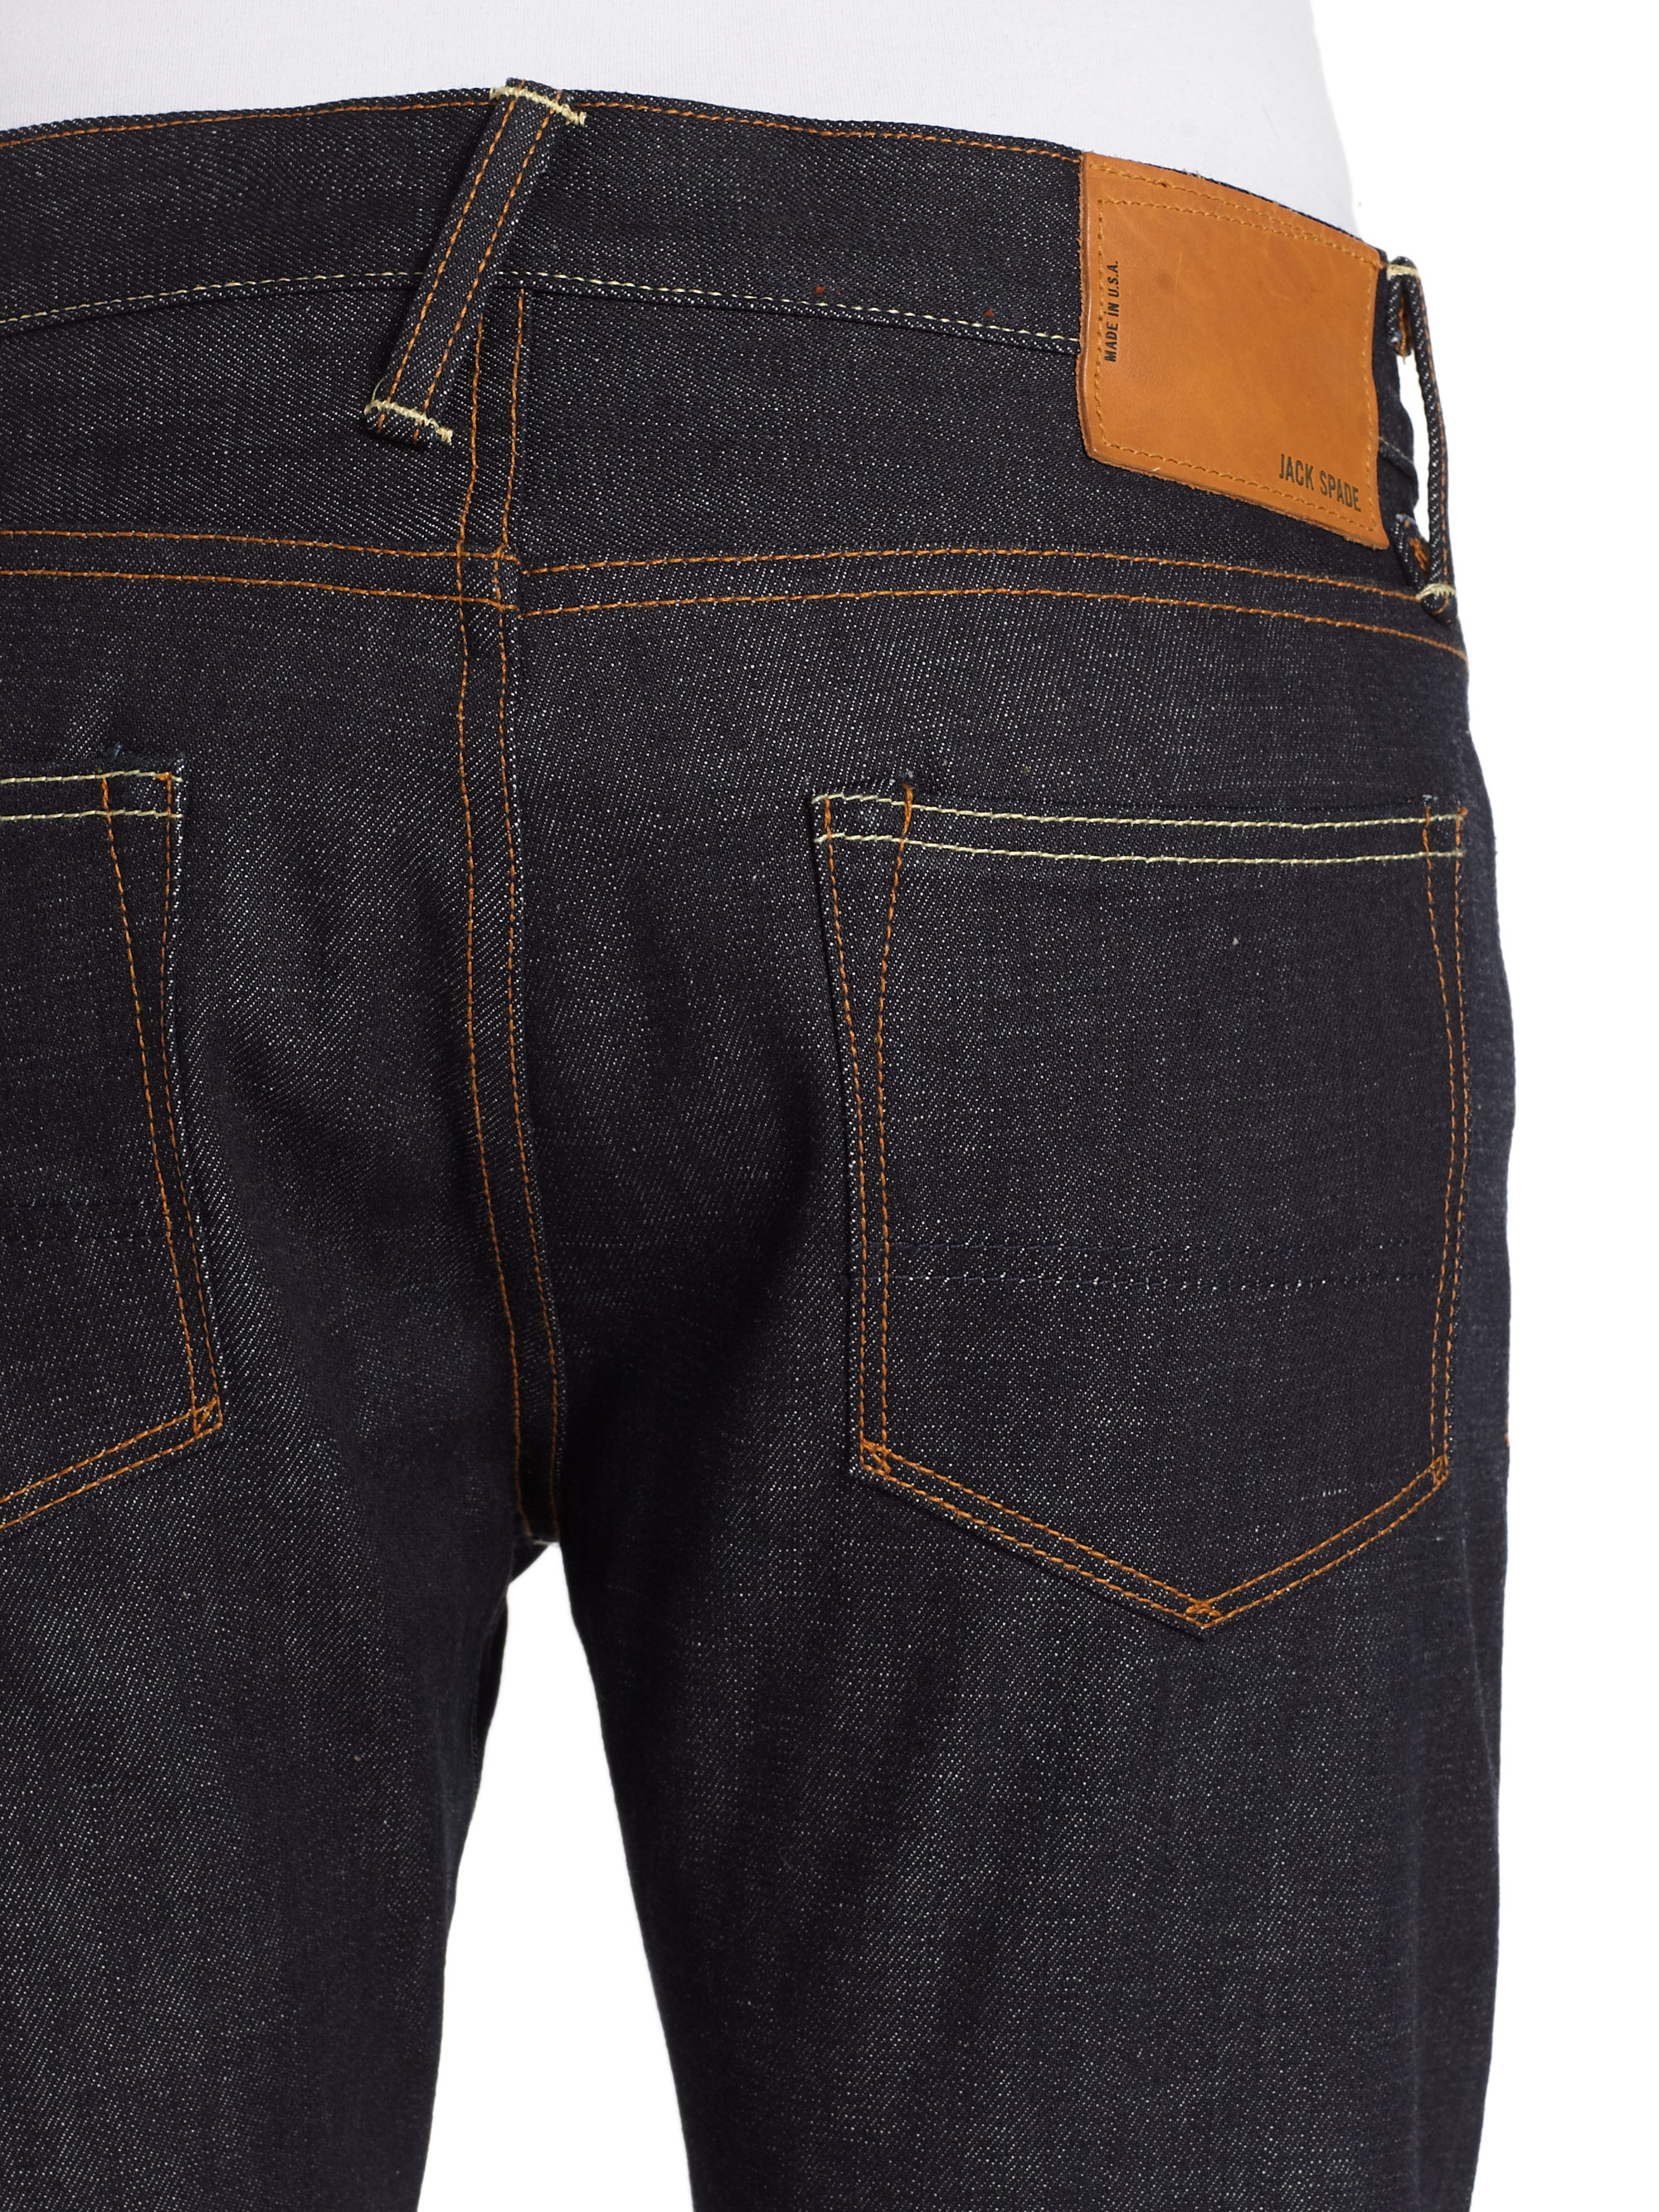 Jeans For Thin Men